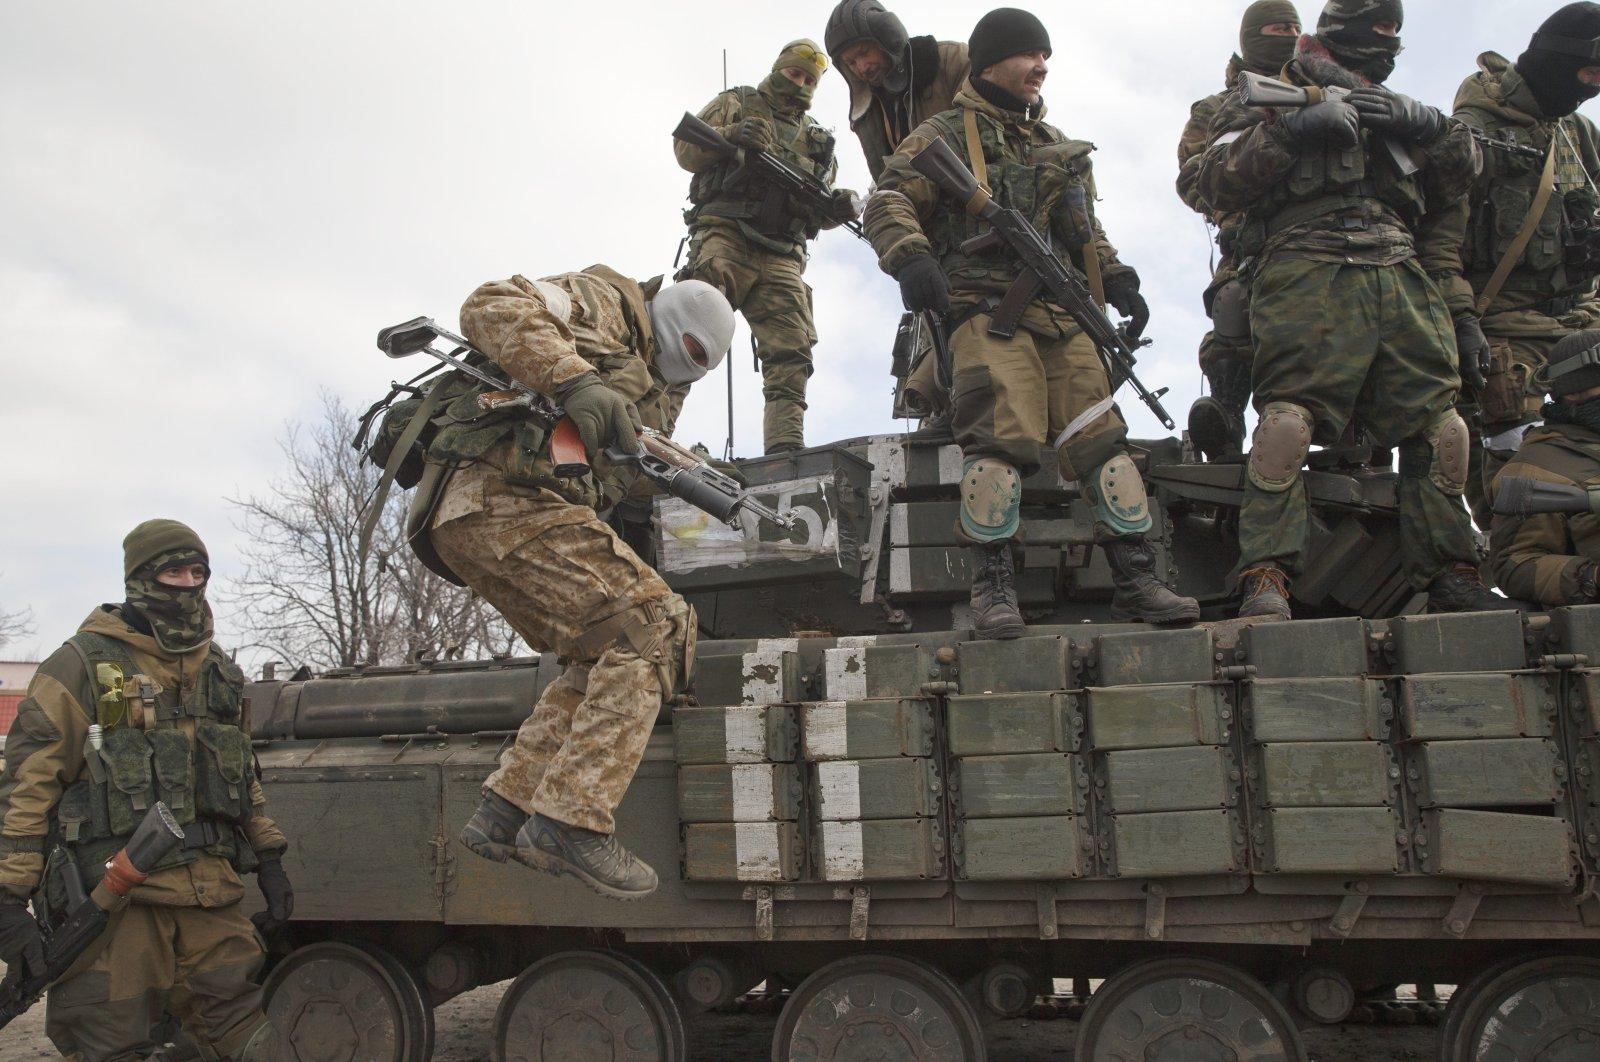 A Russia-backed rebel jumps off a tank in Donetsk, Ukraine, February 20, 2015. (AP Photo)